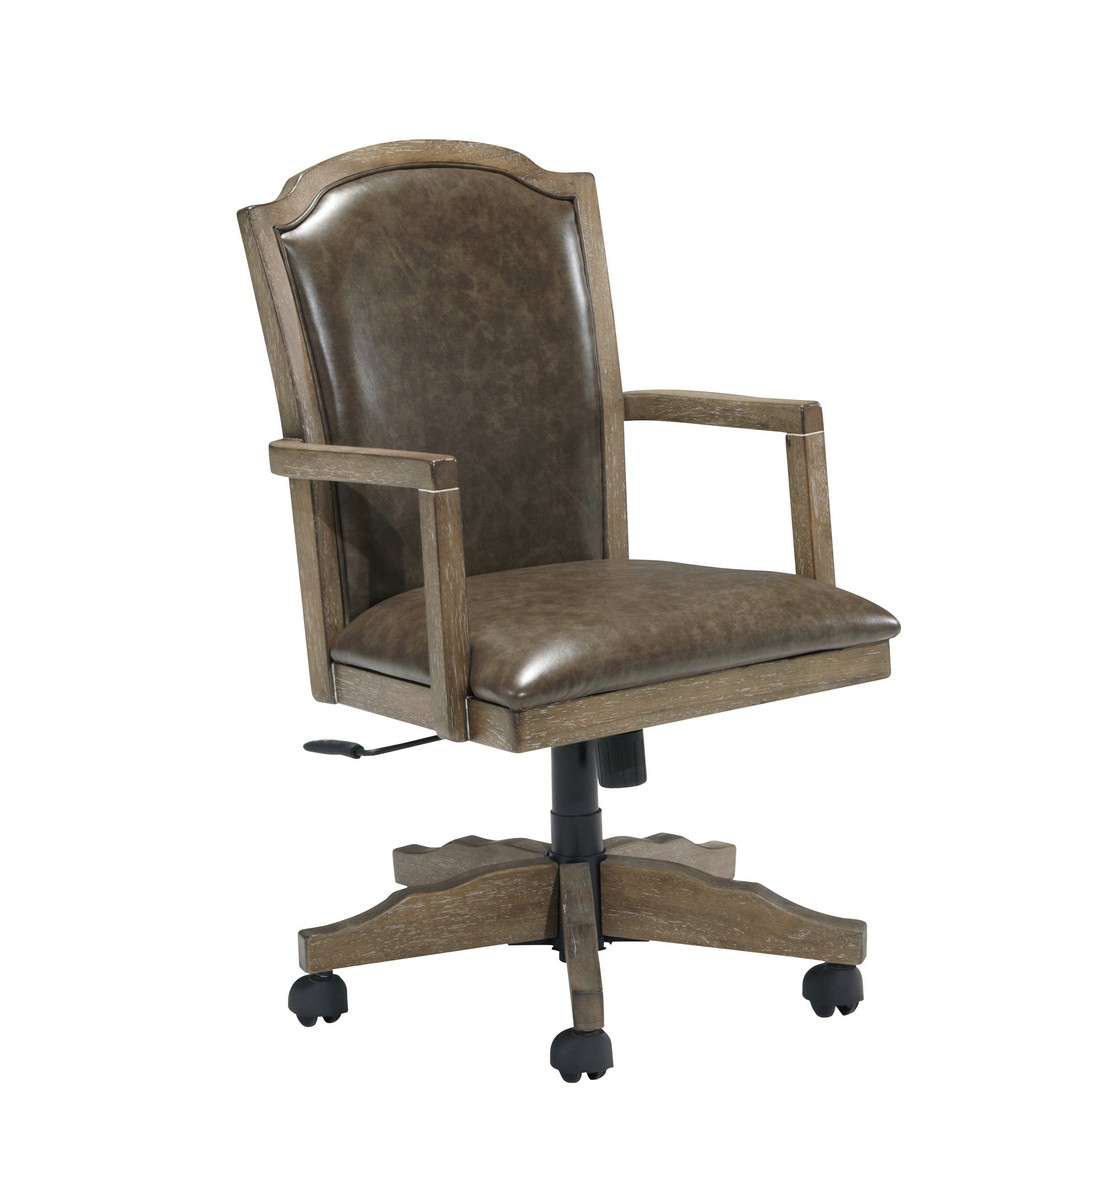 ashley furniture swivel chair summer bentwood high tanshire home office desk h688